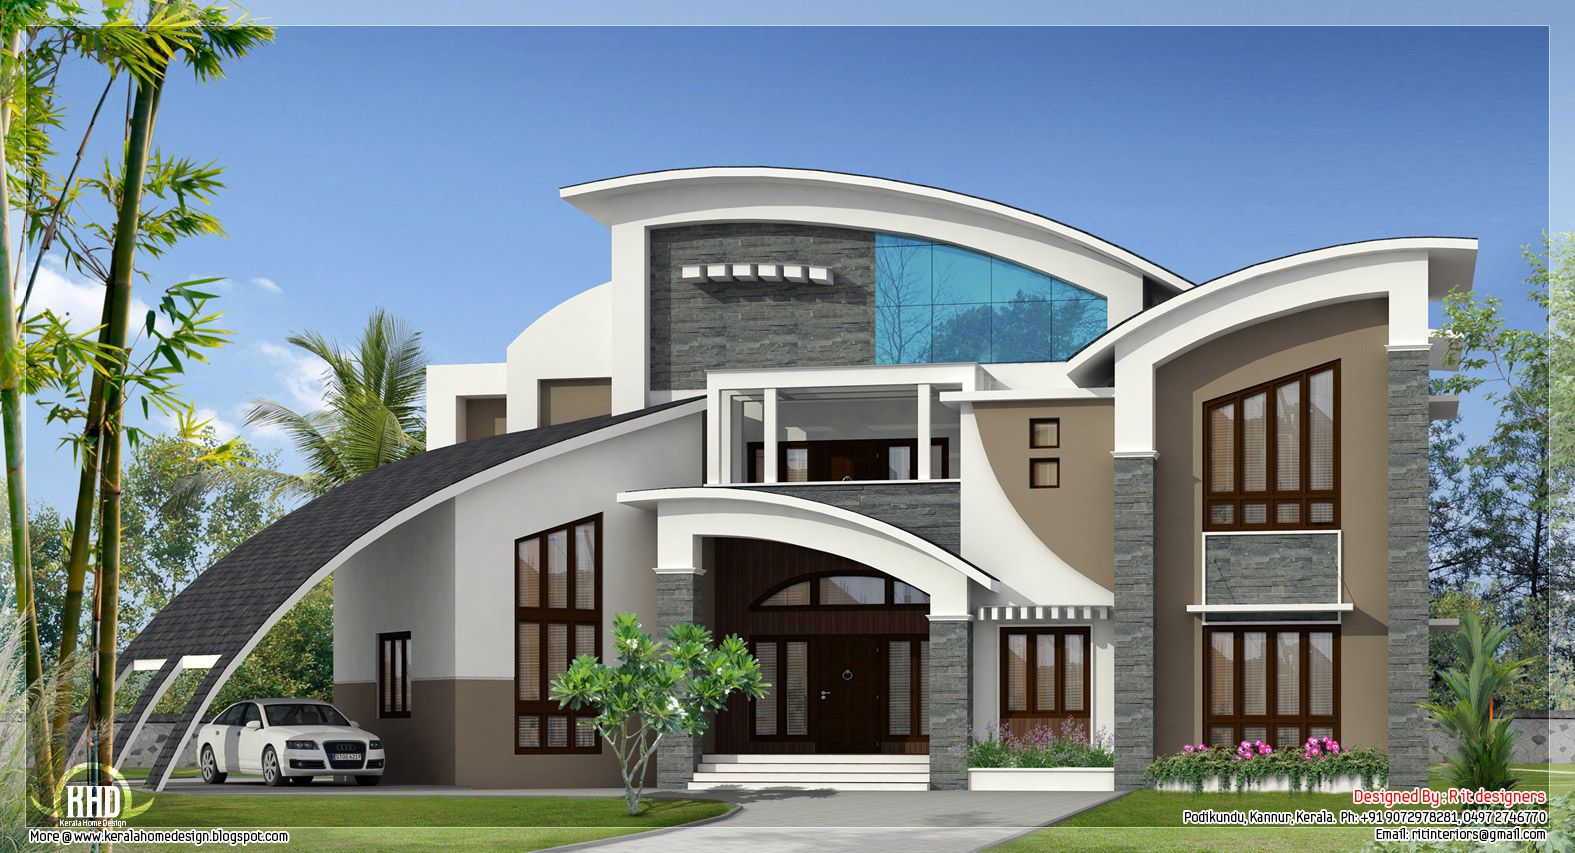 architecture unique hoouse design luxury kerala villa design by r it designers kannur kerala unique home design and interior concept of building